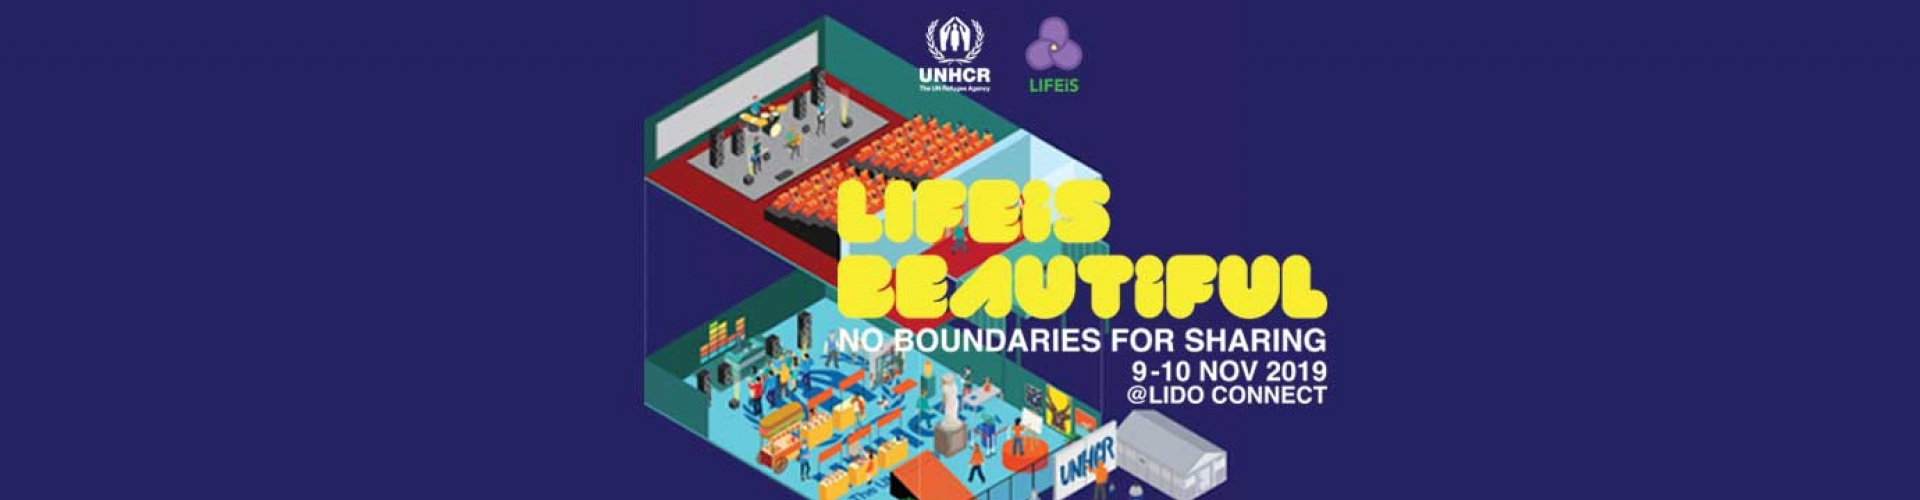 LIFEiS BEAUTiFUL - No boundaries for sharing | Charity LiFESTYLE EVENT